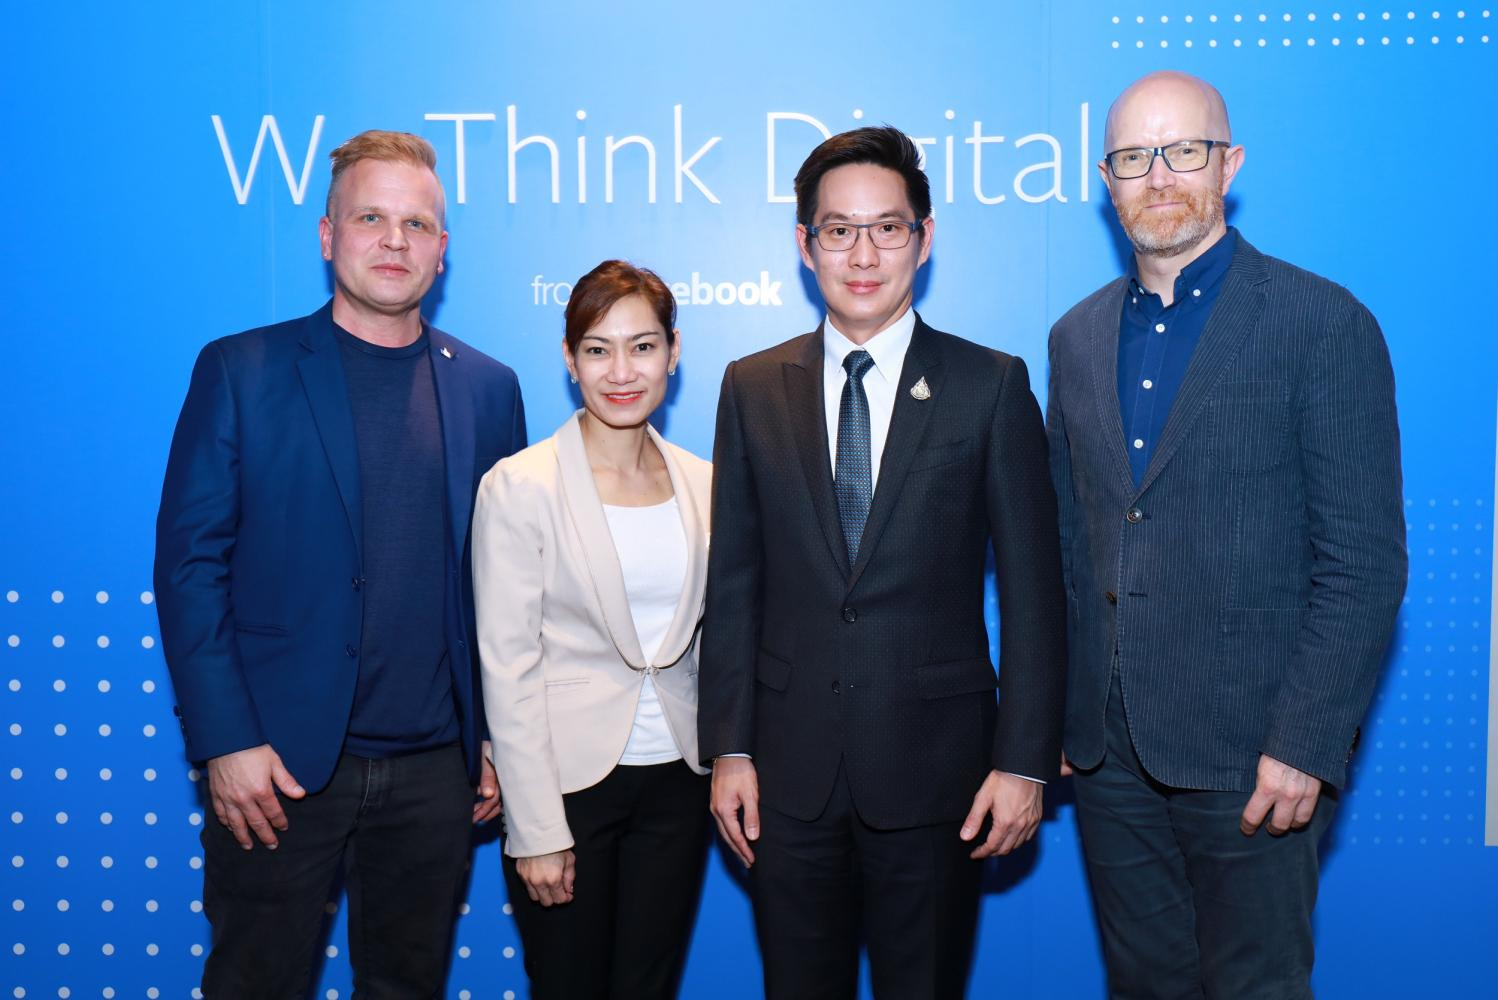 From left Michael Bak, head of public policy for Facebook Thailand; Pijitra Suppasawatgul, Journalism Department head at Chulalongkorn University; Newin Chochaiyathip, vice-minister of the DES Ministry; and Simon Milner, vice-president for public policy in APAC at Facebook.